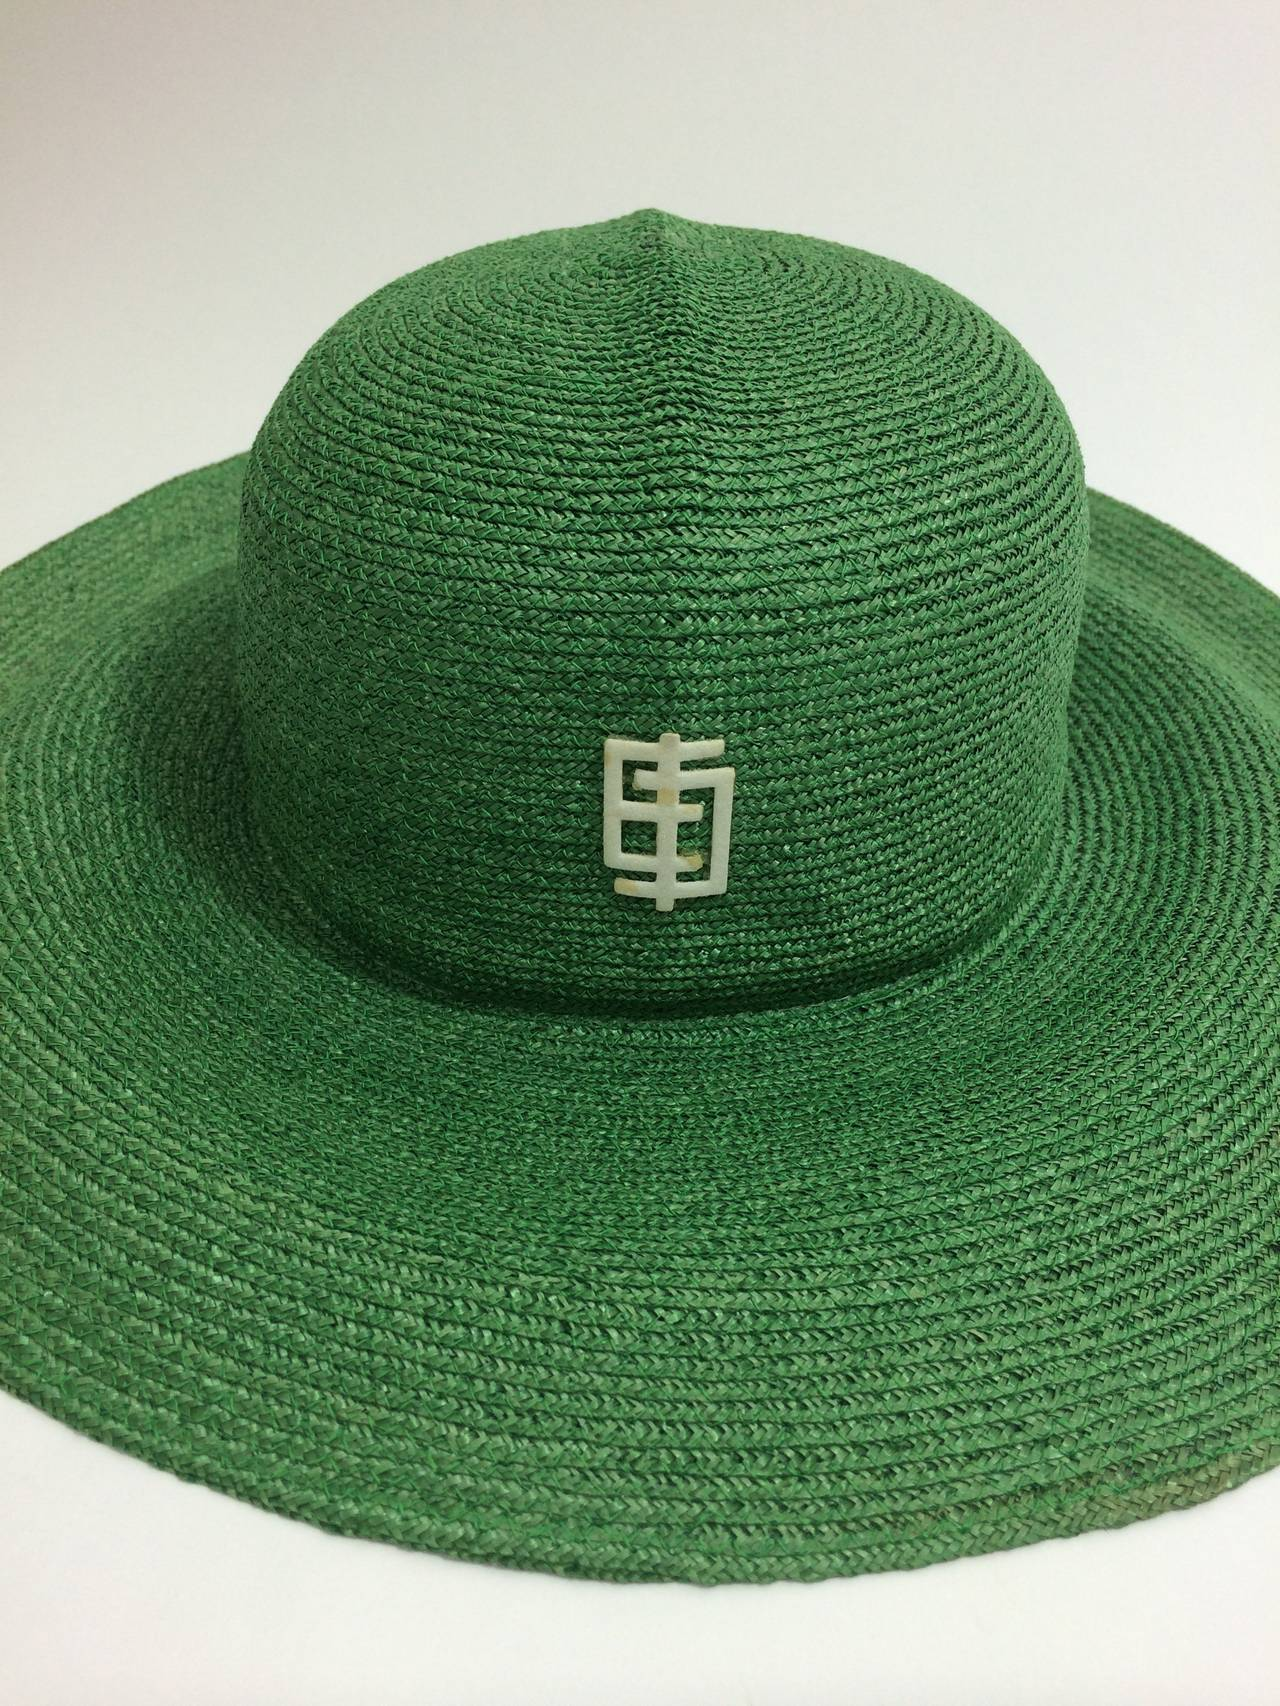 Vintage Pucci Green Sun Hat 4